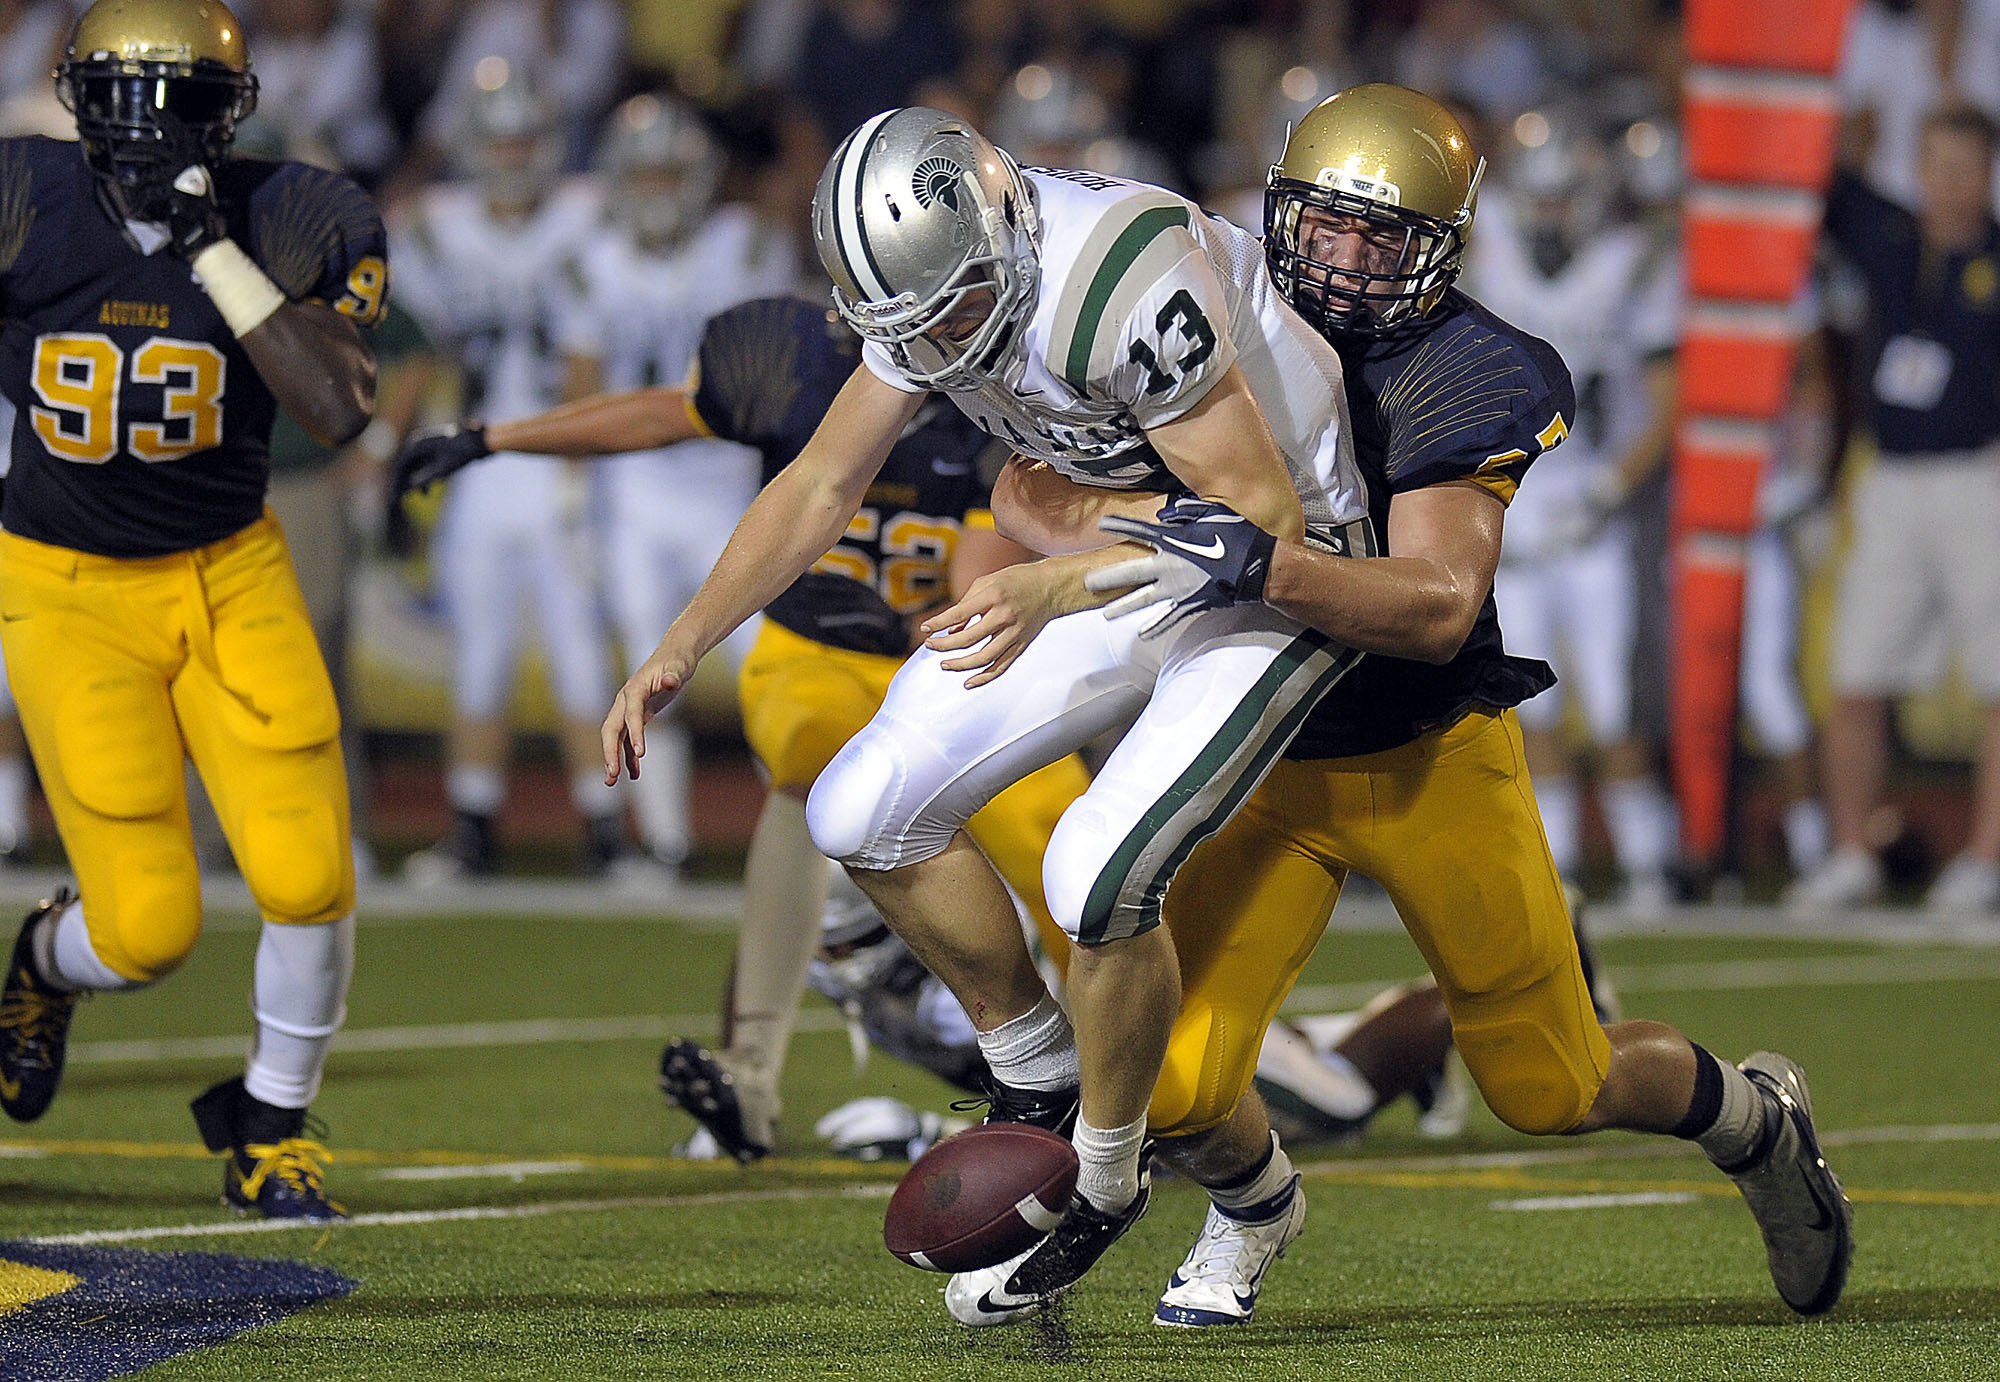 St. Thomas Aquinas lineman Joseph Bosa strips the ball loose from De La Salle quarterback Bart Houston.